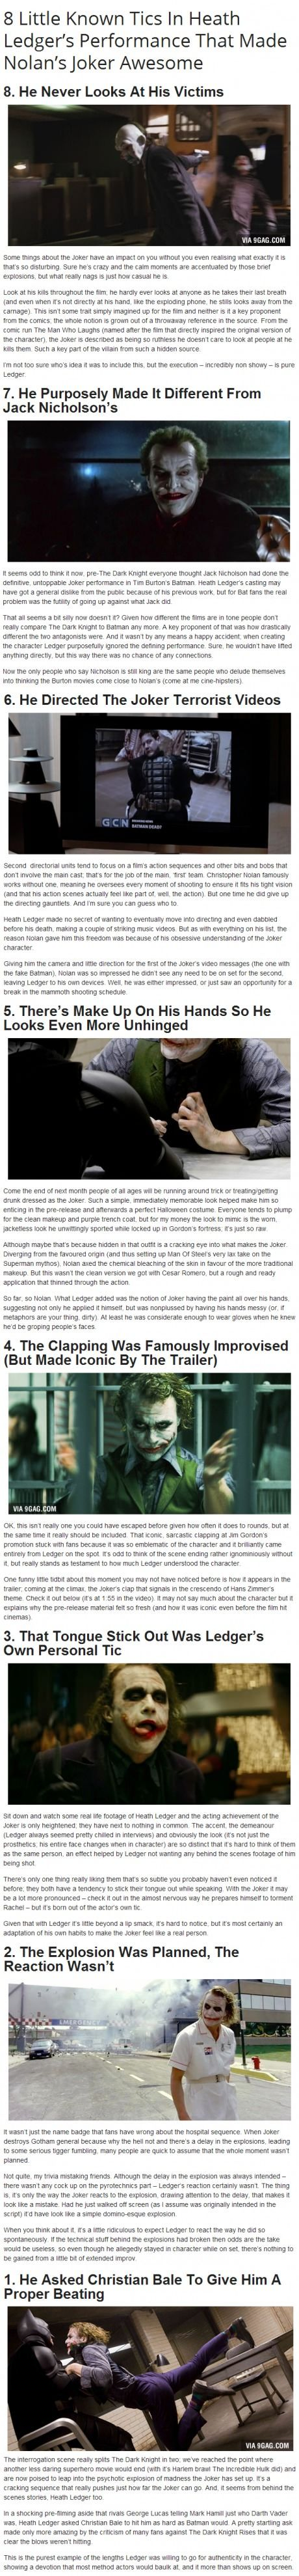 If you ask me, Heath Ledger made the Joker character untouchable for the next generation. Seriously. He was the most incredible.-- nicely said.